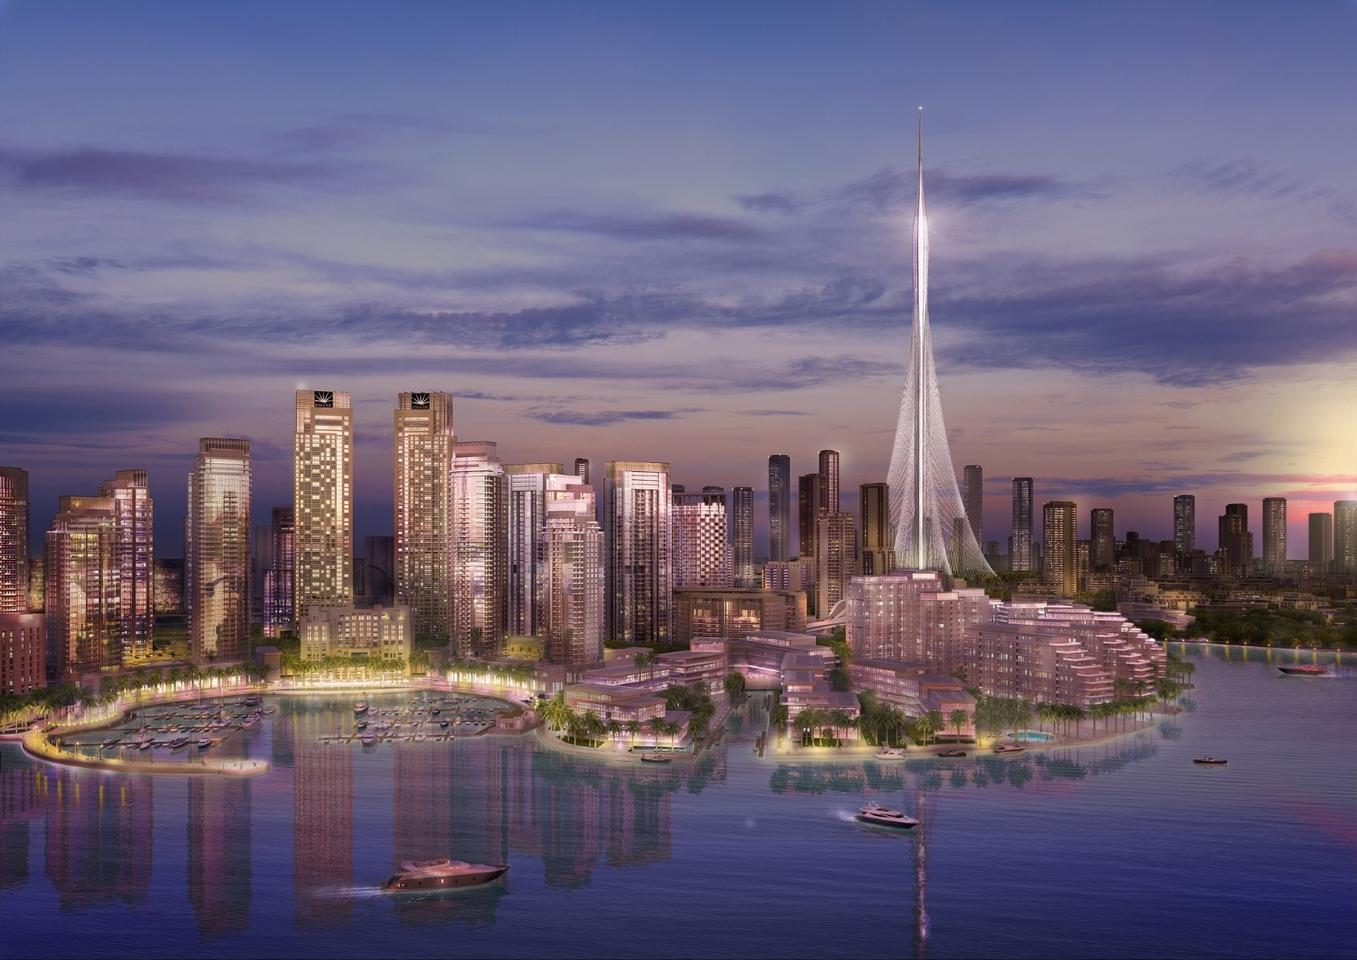 The tower will reportedly reach a height of over 828 m (2,716 ft)